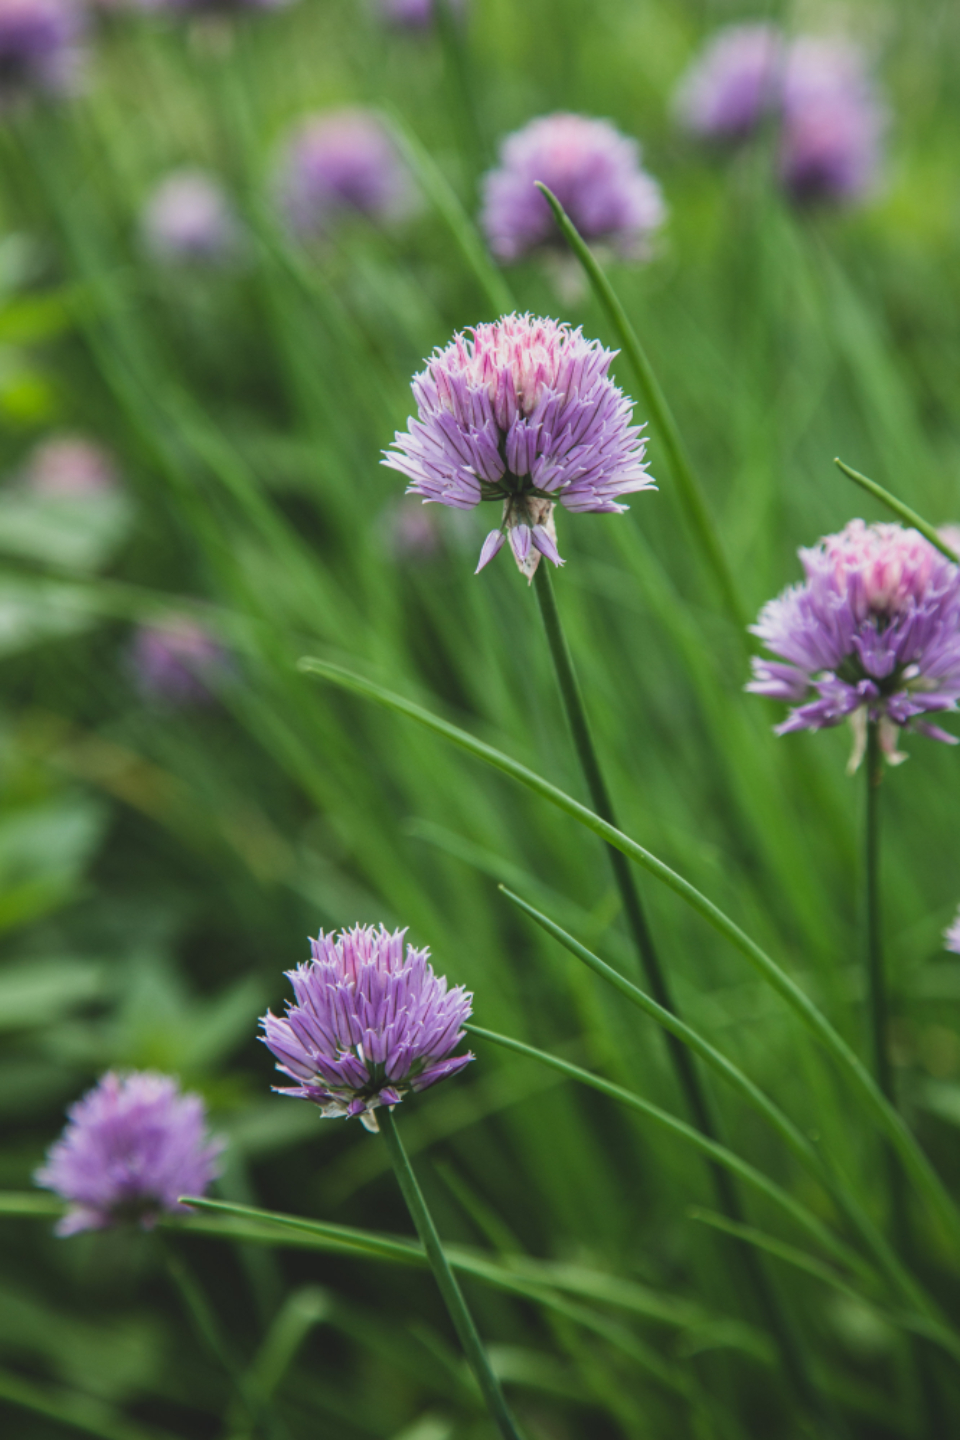 chives blossom garden nature wild purple bloom plants botanical close up bokeh ingredient